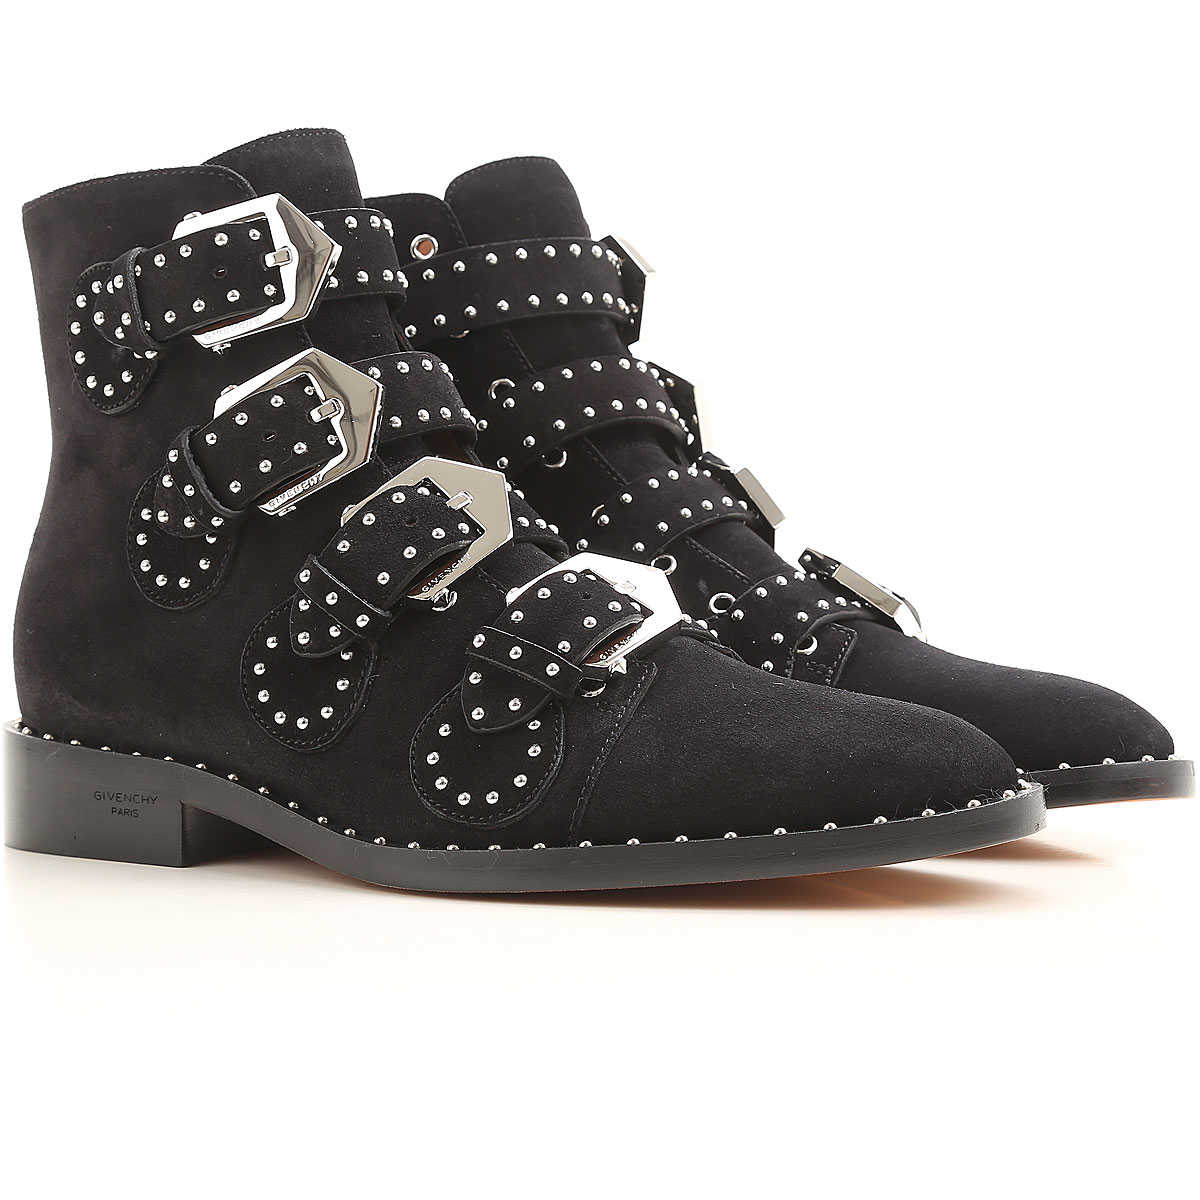 Givenchy Boots for Women, Booties On